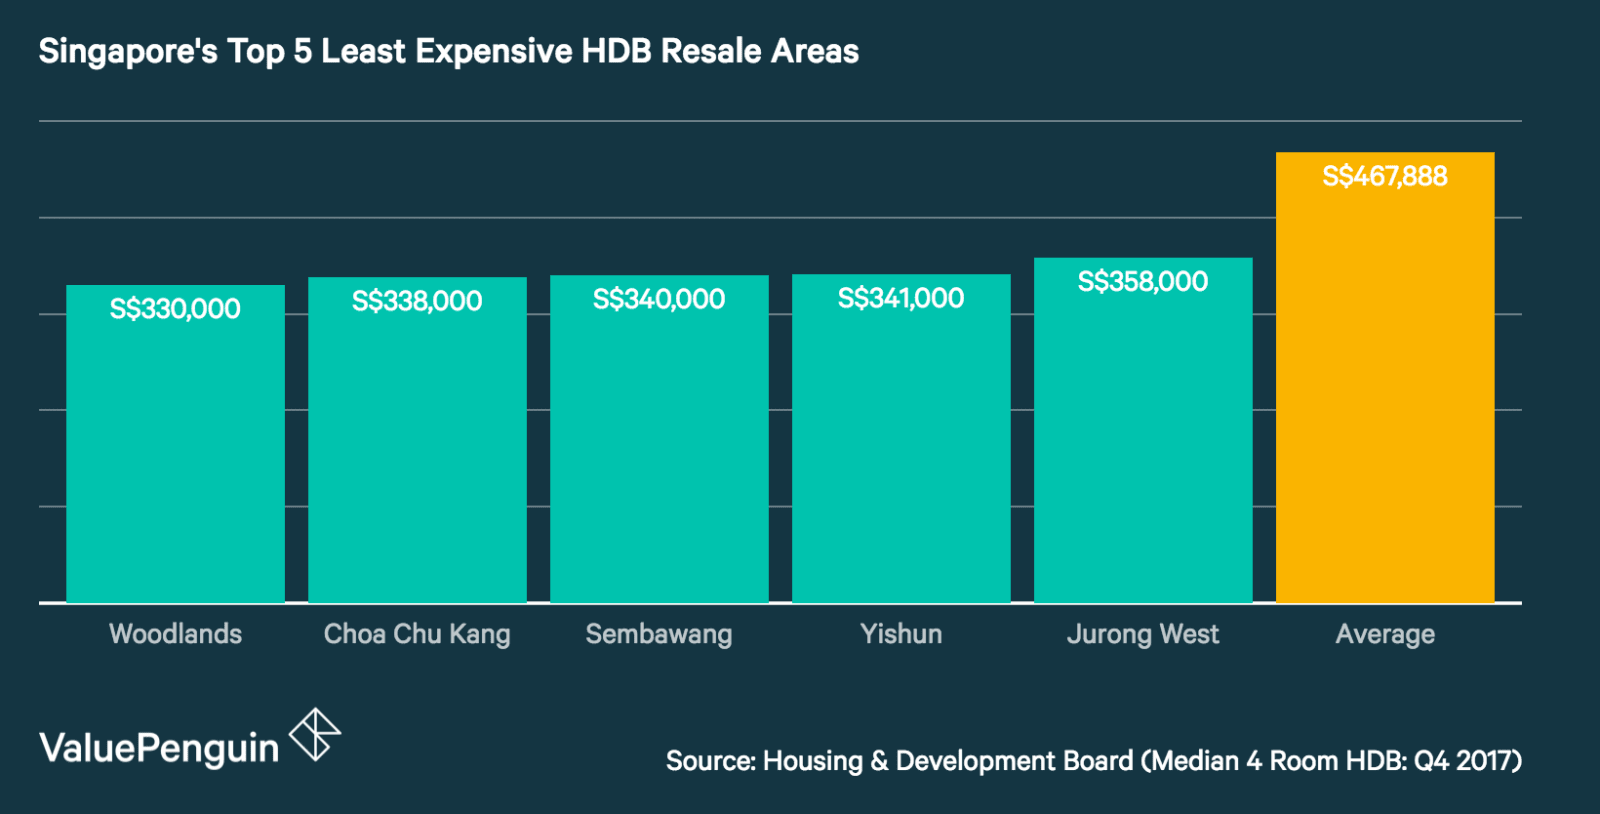 Singapore's Top 5 Least Expensive HDB Resale Areas (4 Room HDB)